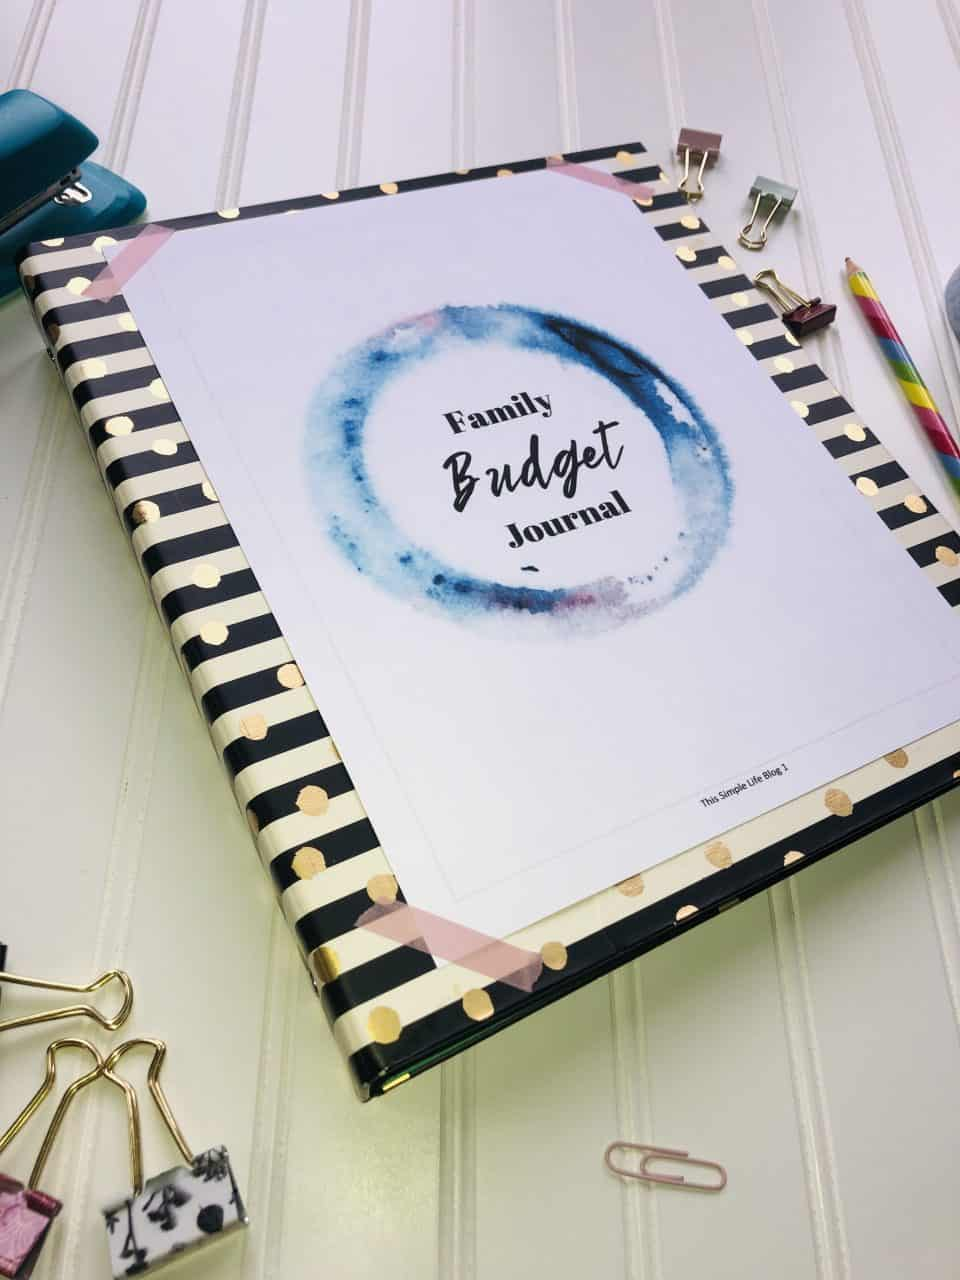 Family Budget Journal